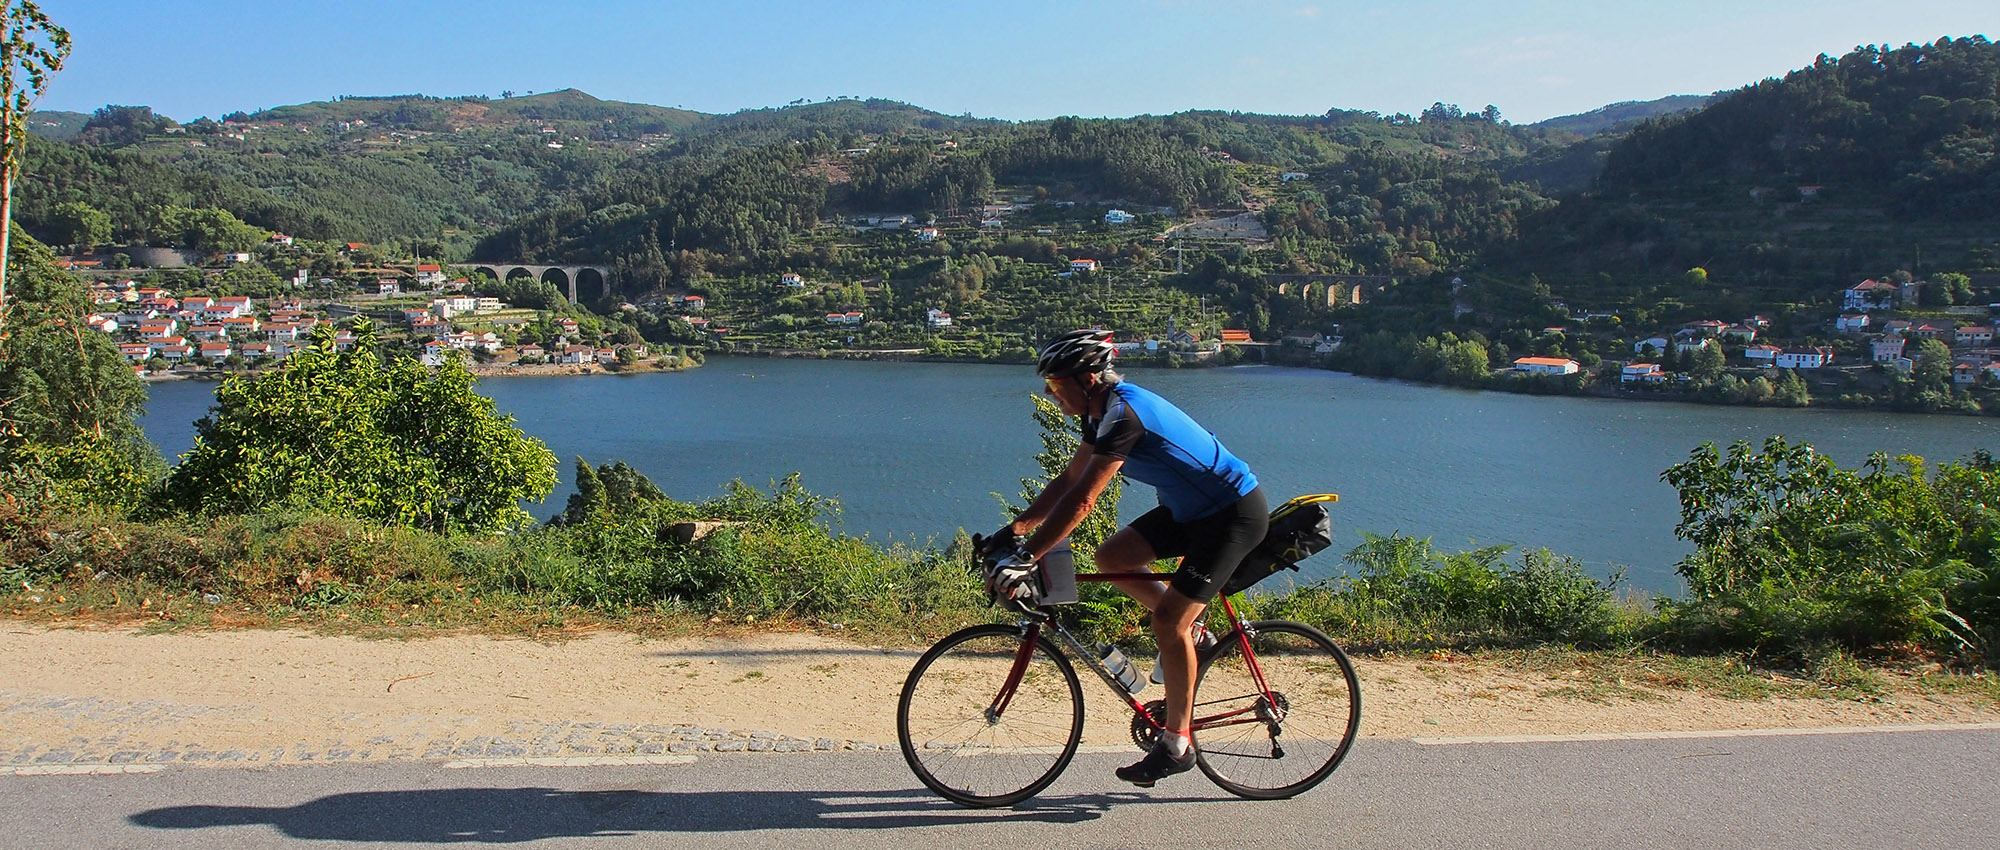 Cycling beside the Douro near Cinfães